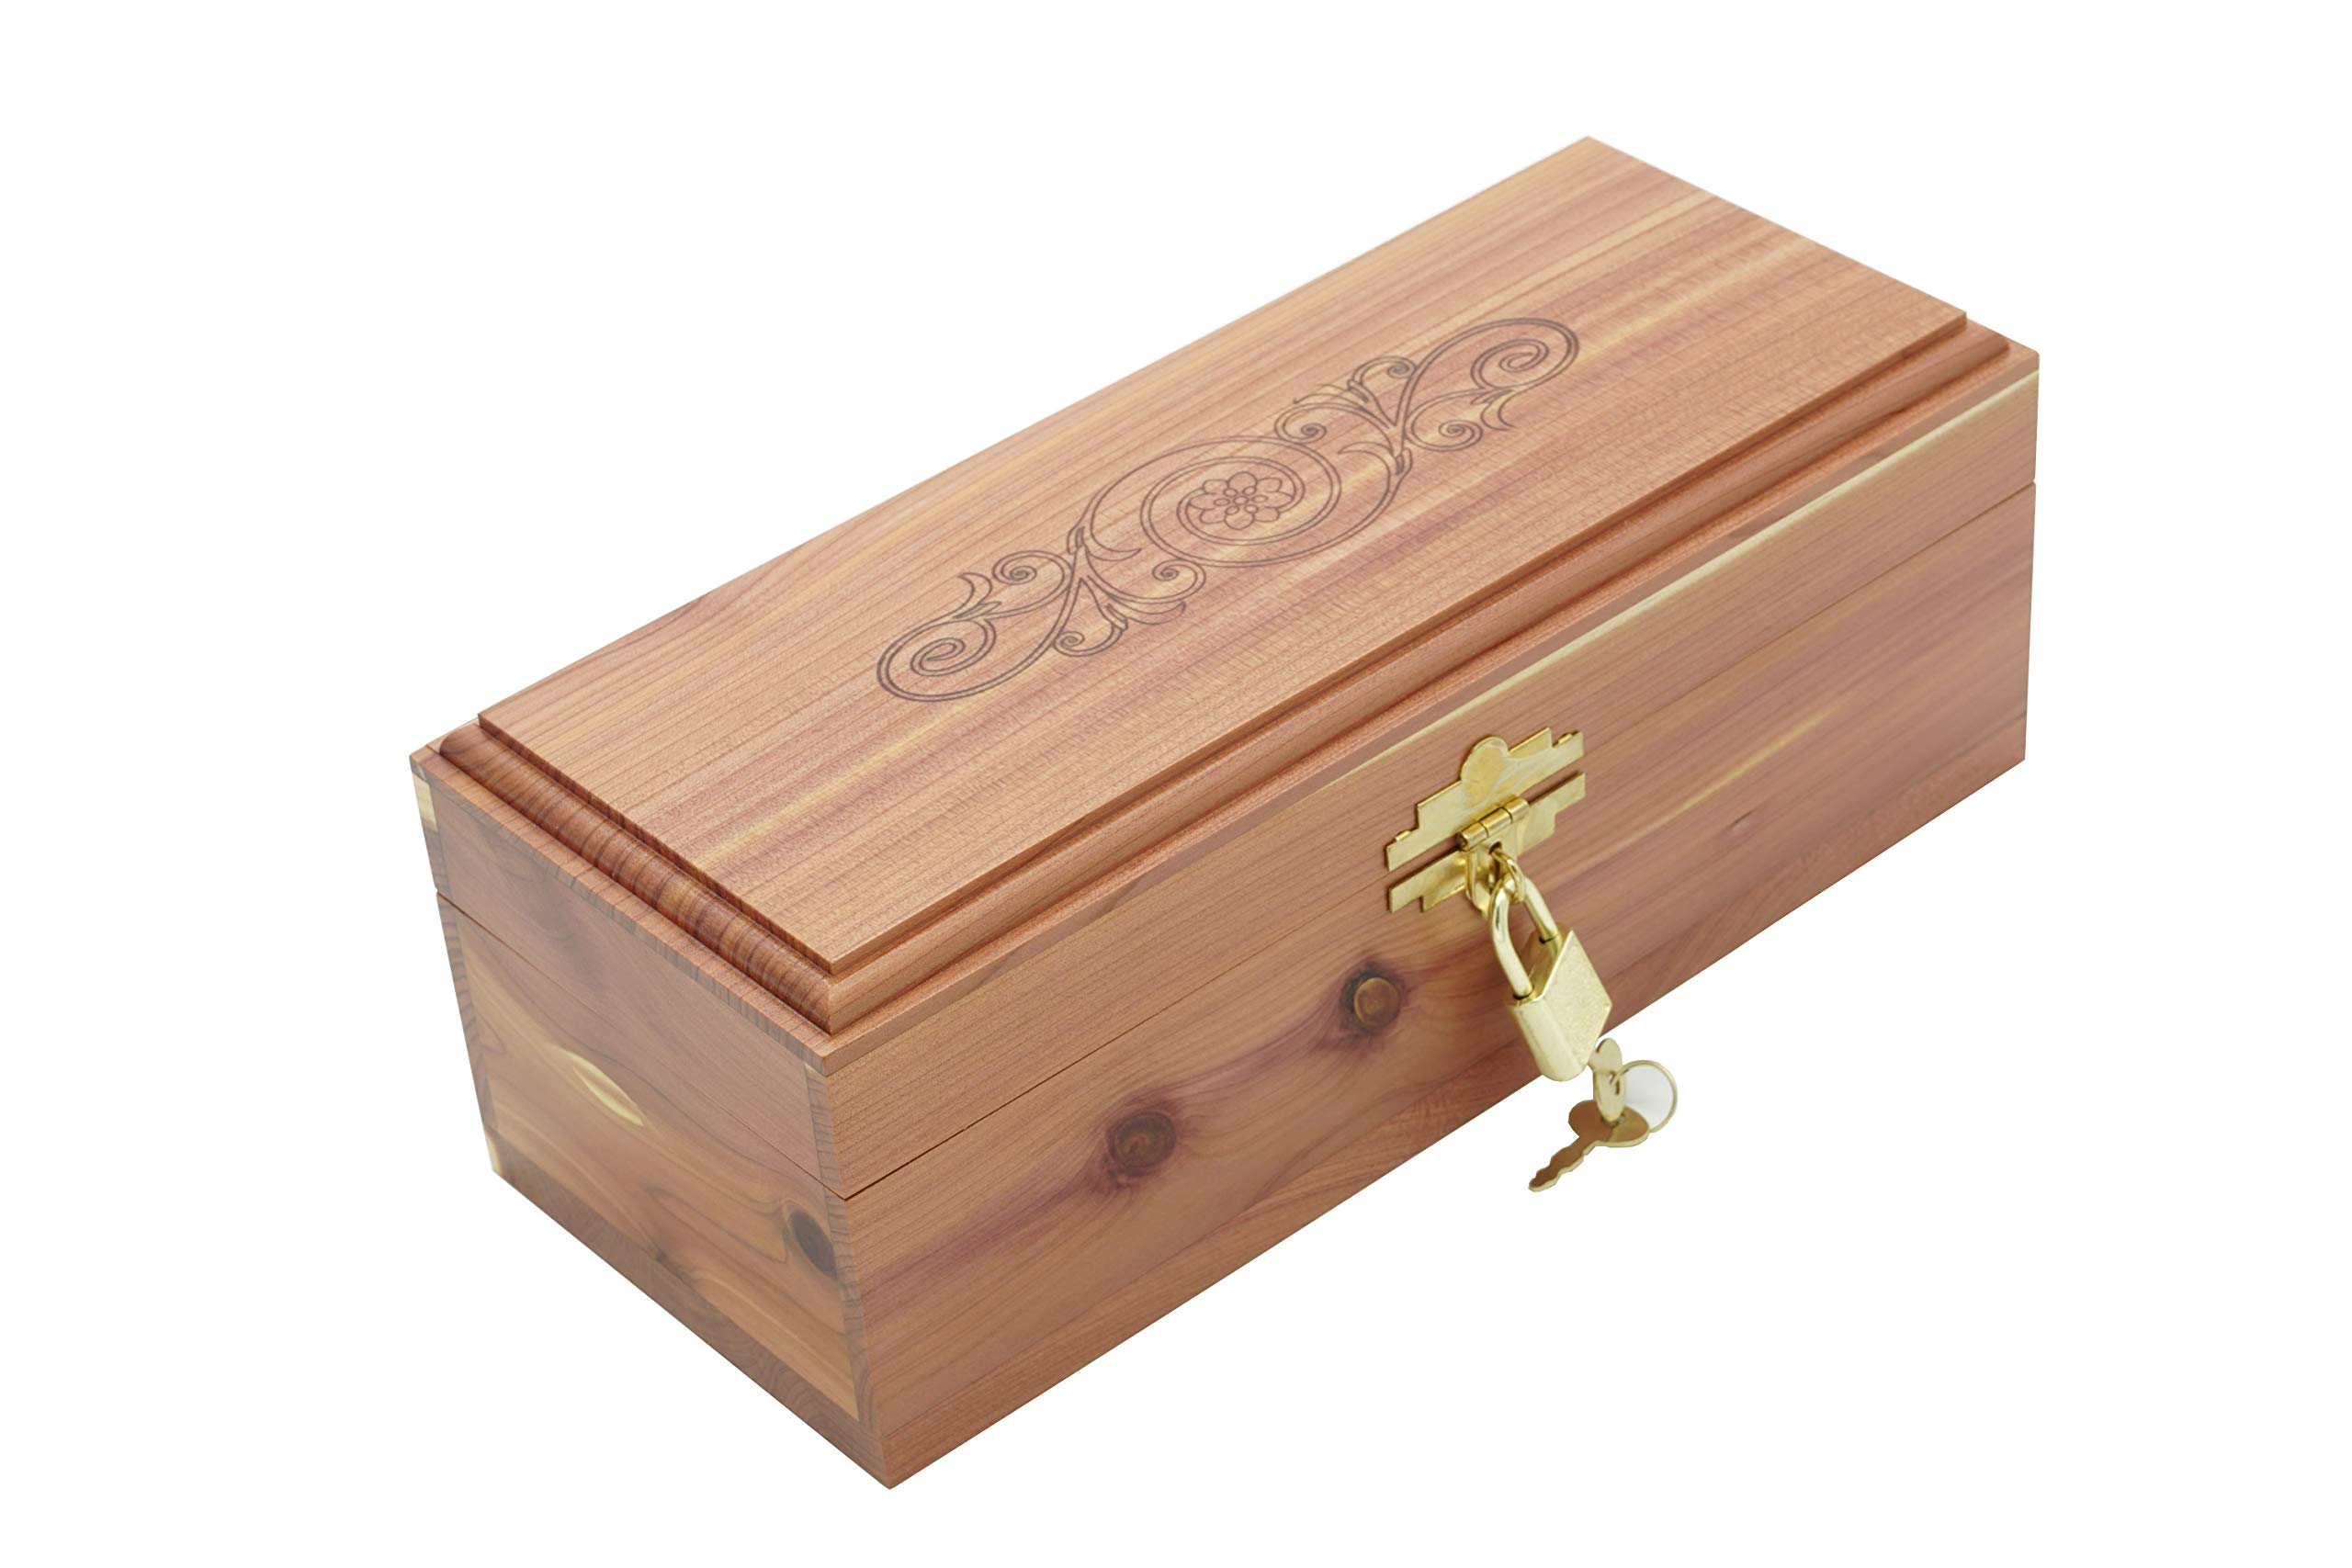 Cedar Essence Keepsake or Memory Box 9.5''L x 4''W x 3.5''H with Lock and Key with Design on top of the Lid